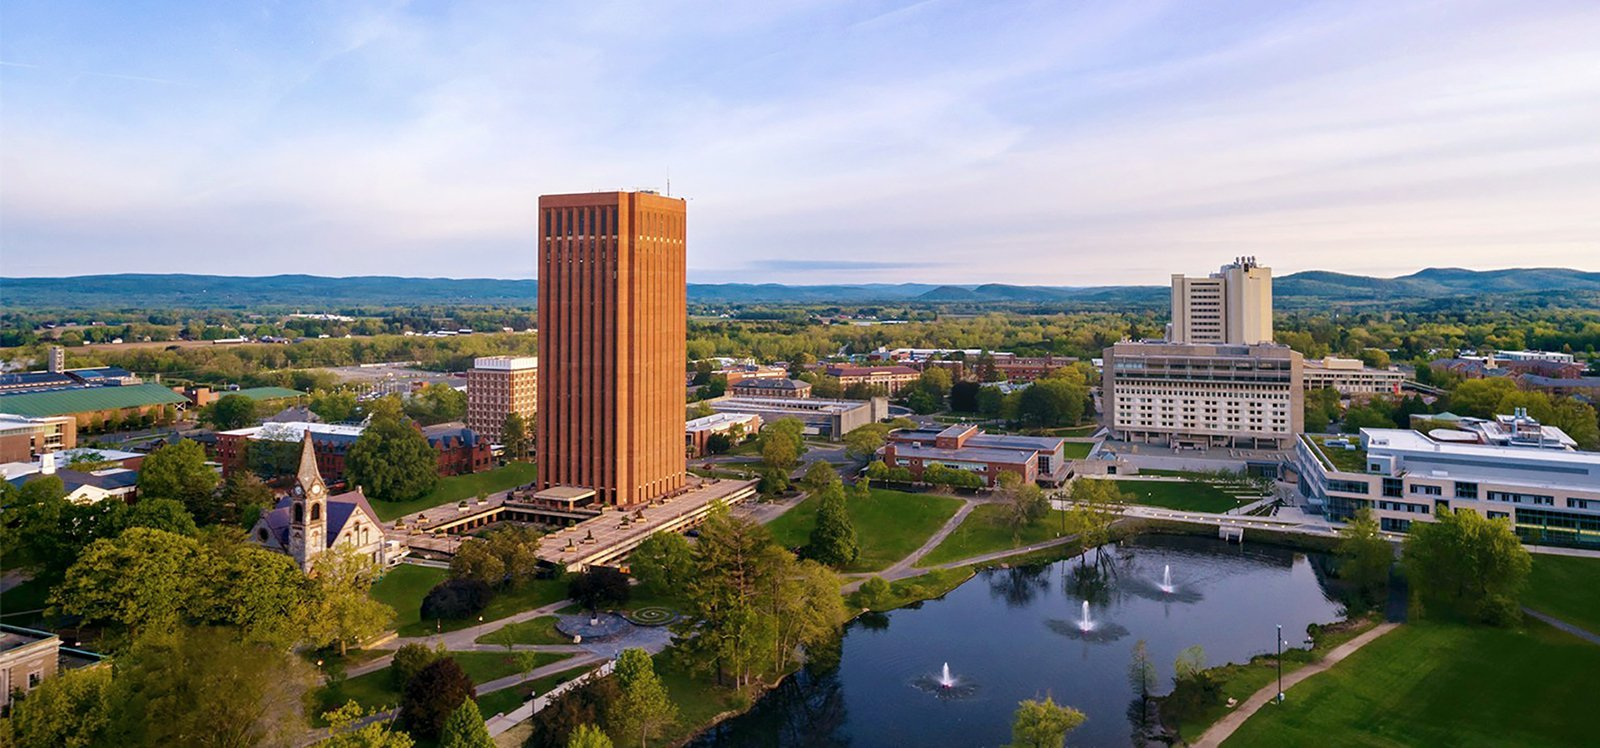 UMass Amherst Campus from above